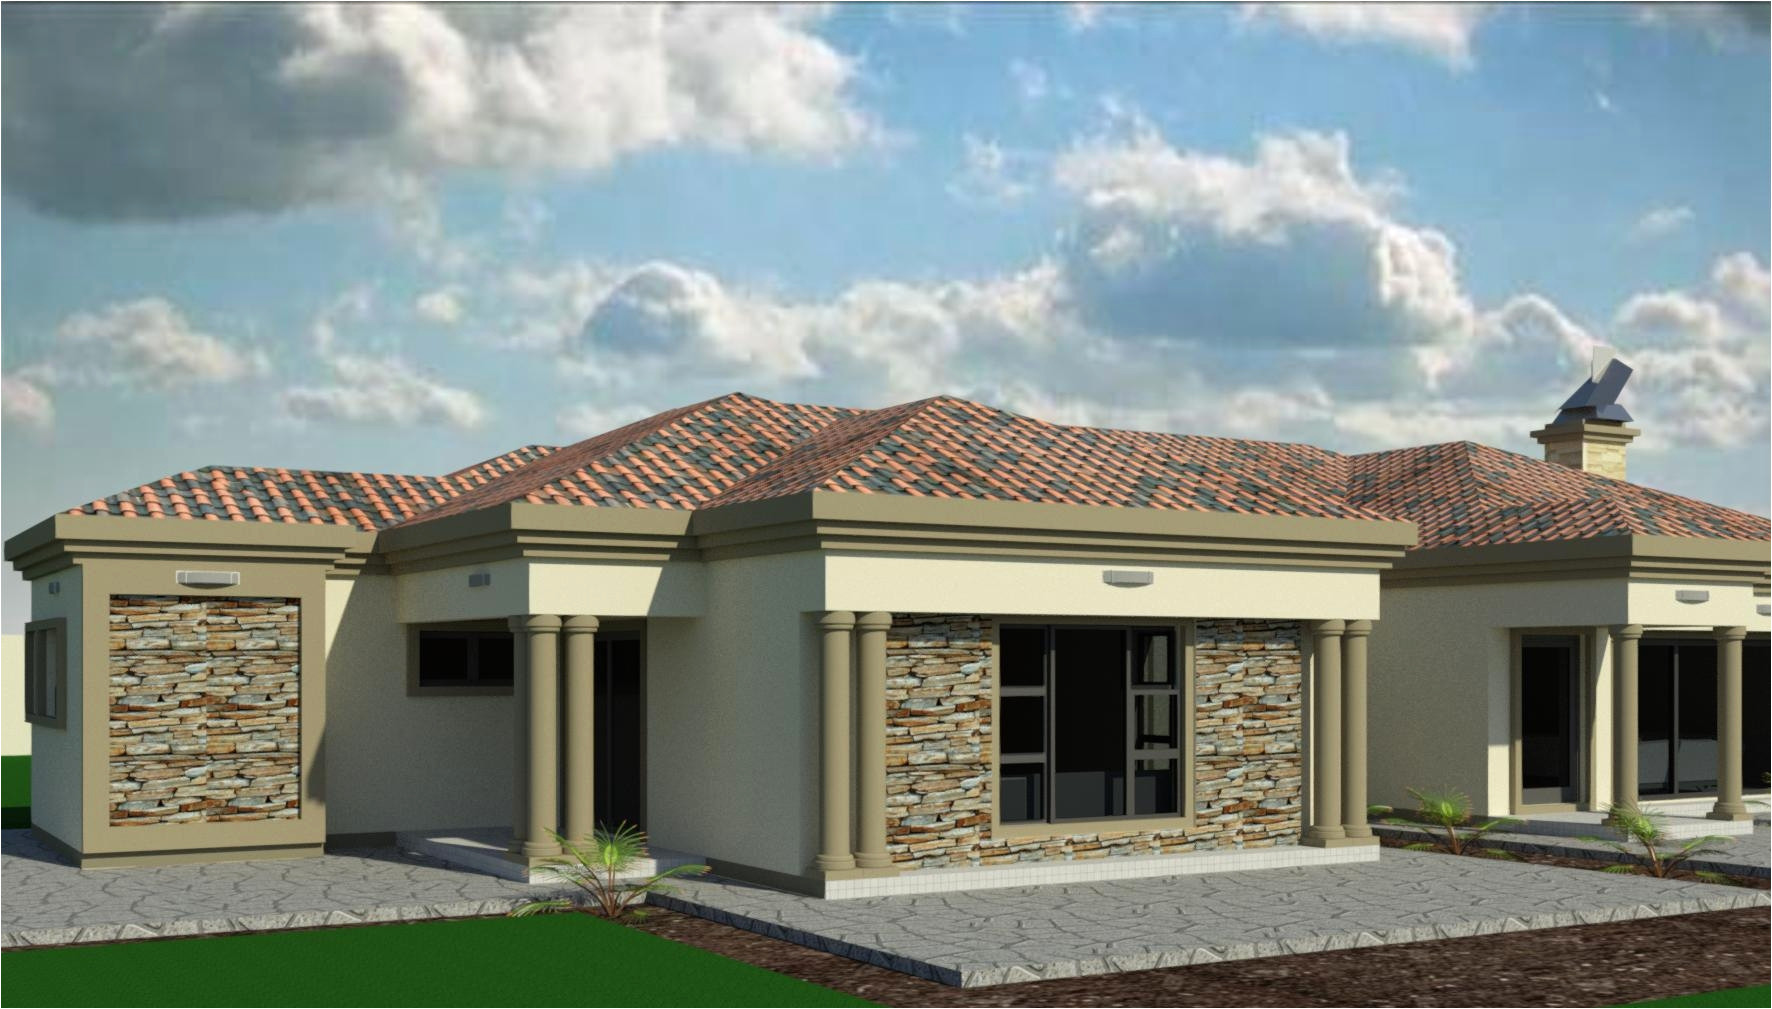 my house plans for home building renovation solution vbgghg 1